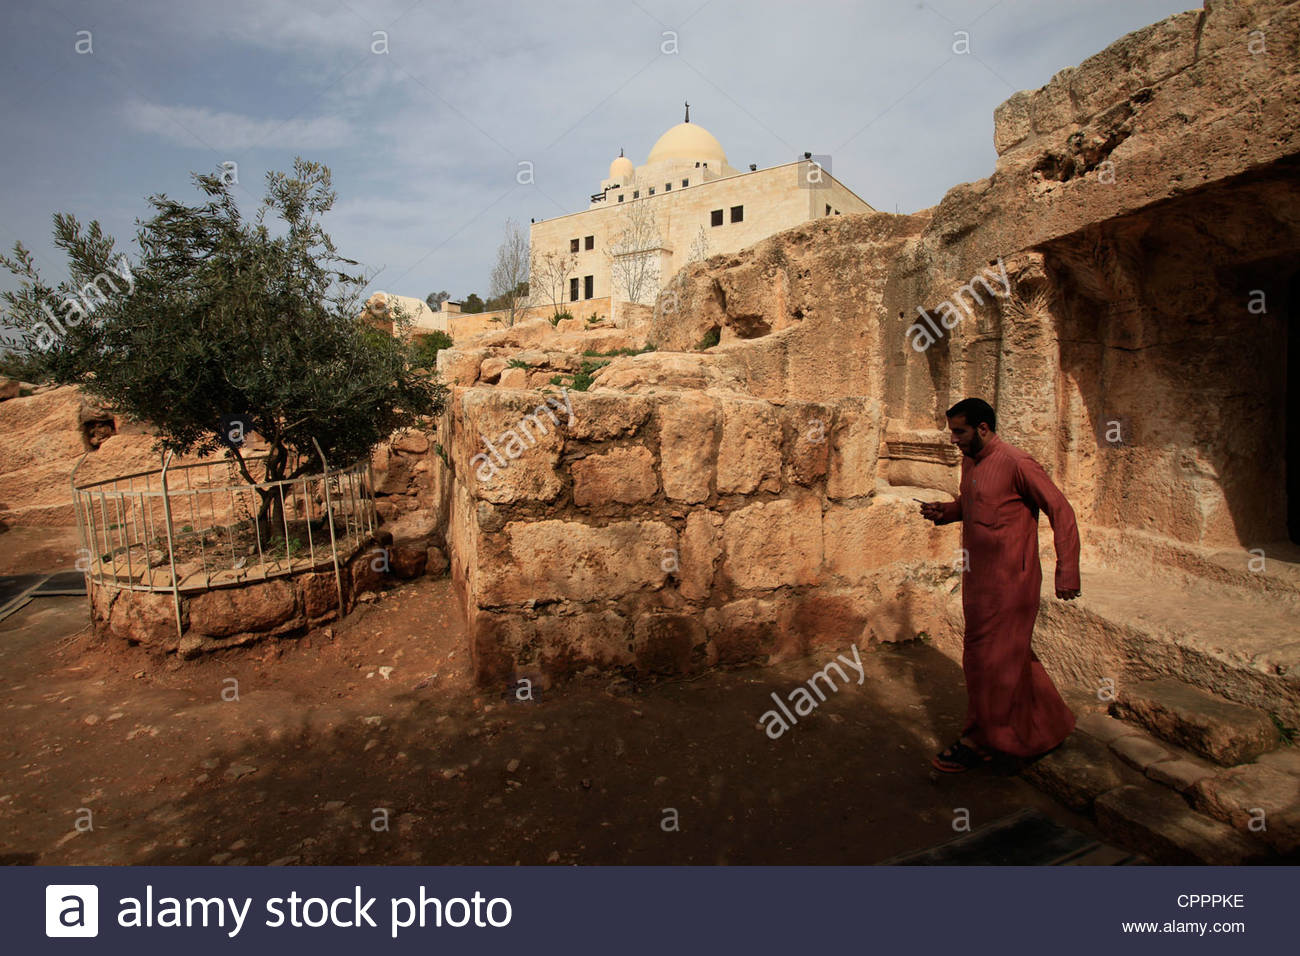 Cave of the Seven Sleepers Amman, Exterior of Kahf Al-Raqim or The Cave of The Seven Sleepers ...